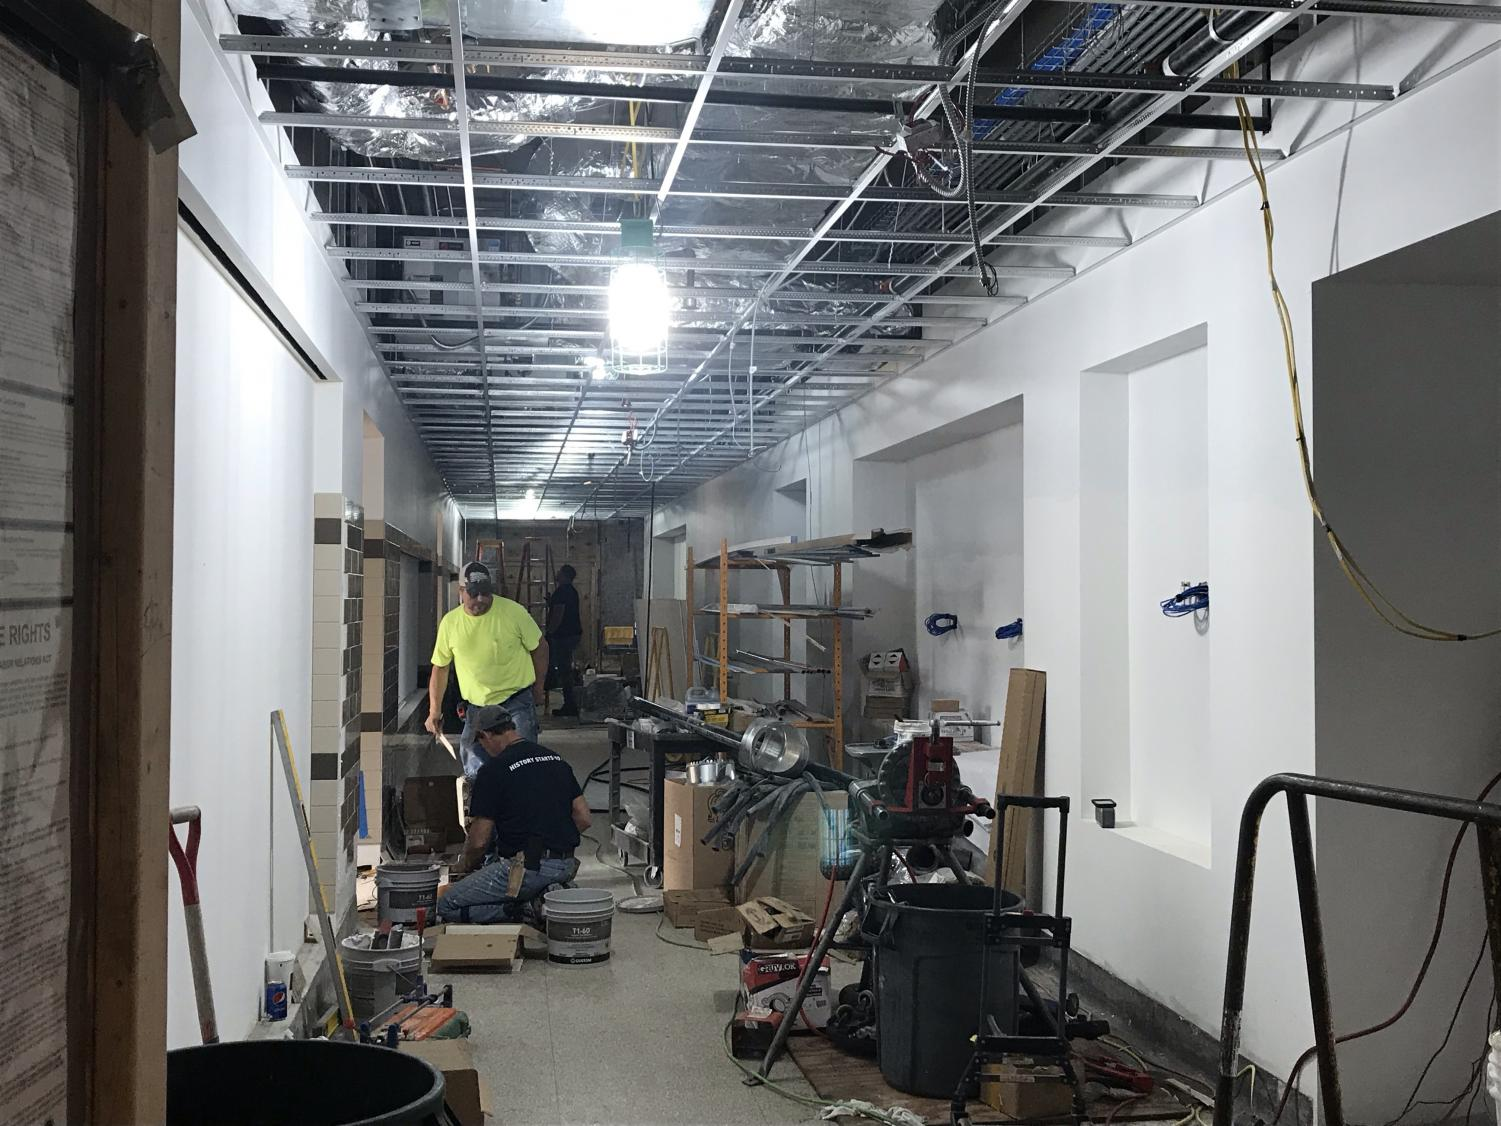 Progress continues on the renovation of the first floor, which is due to be completed by mid October.